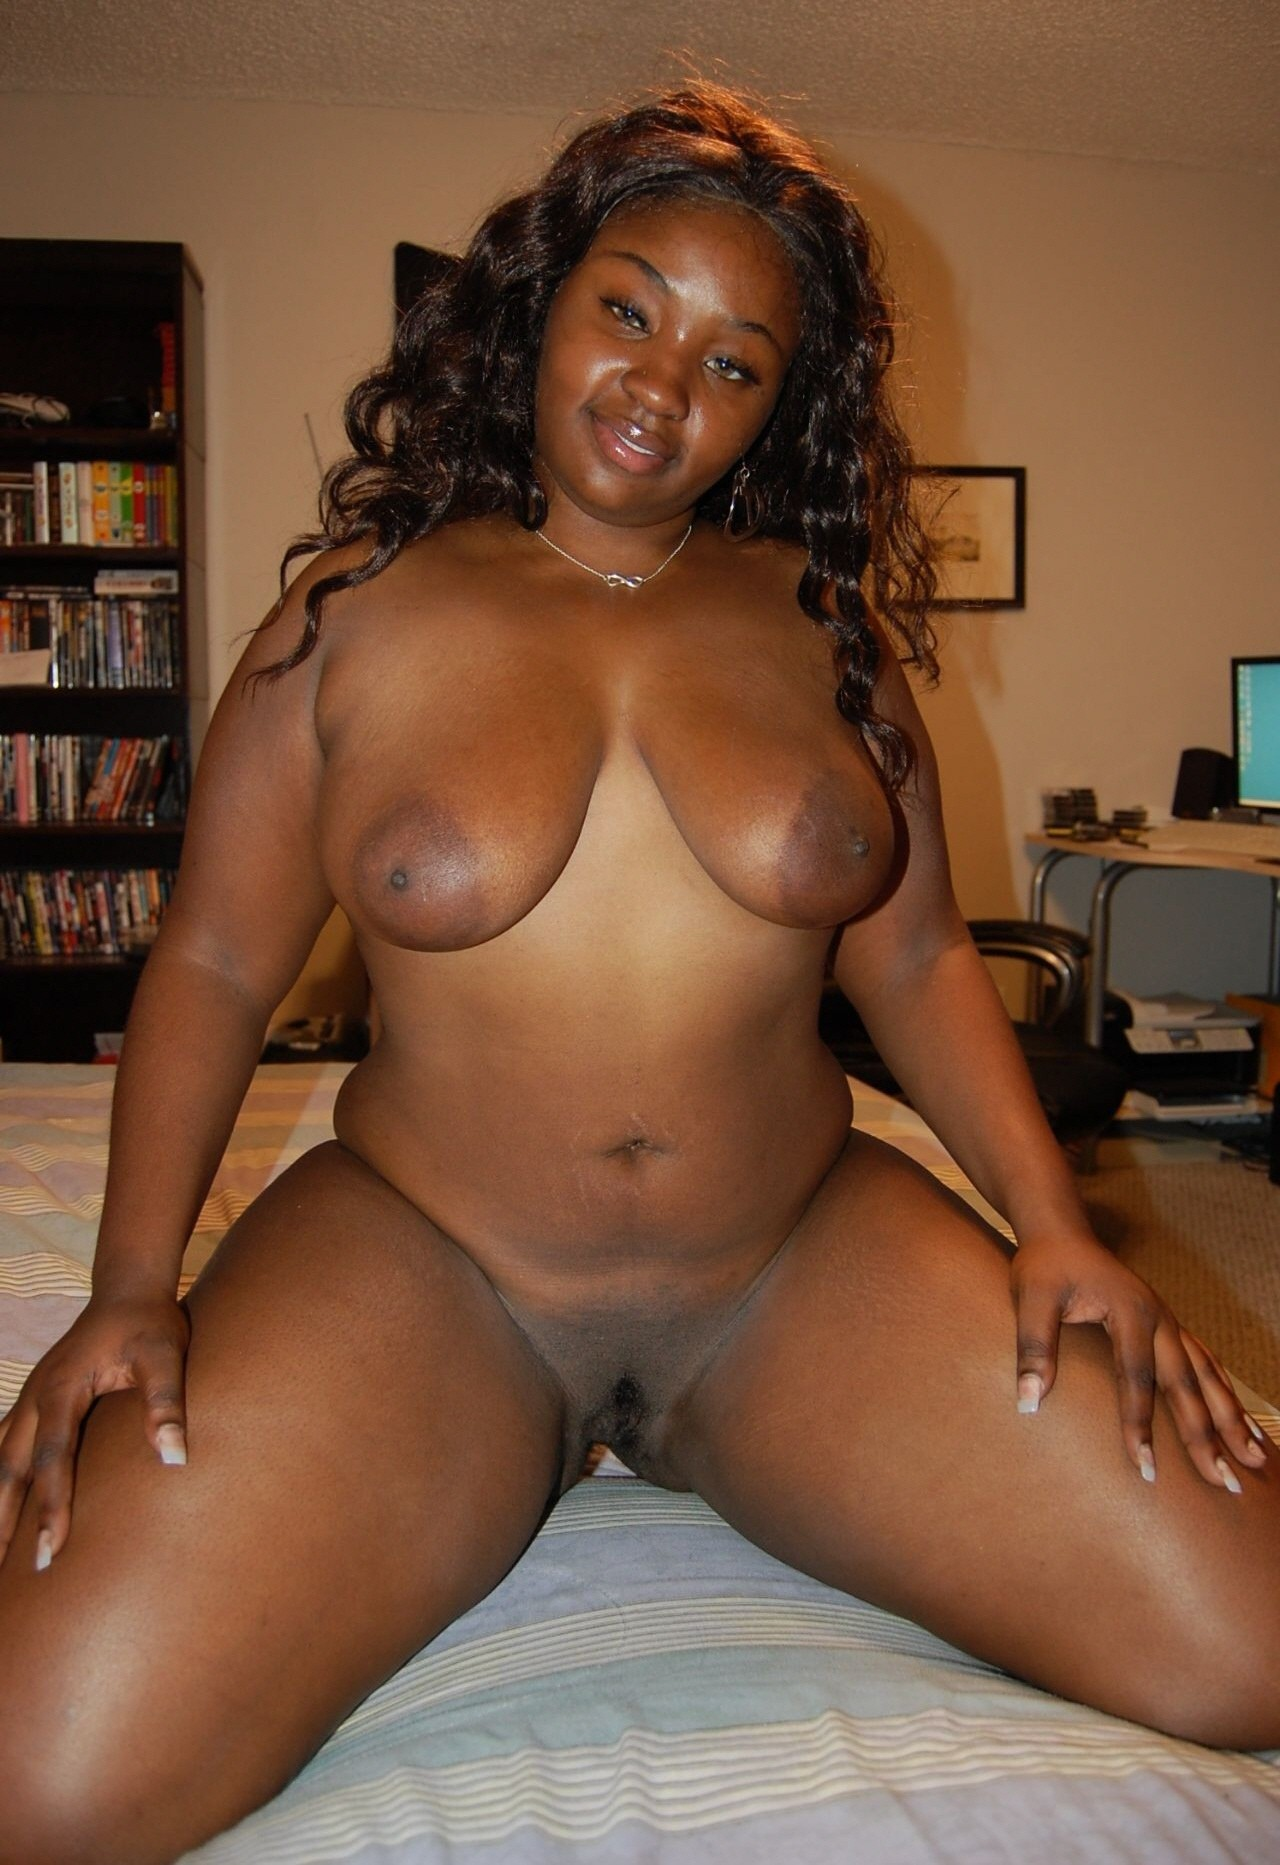 Chubby ebony women